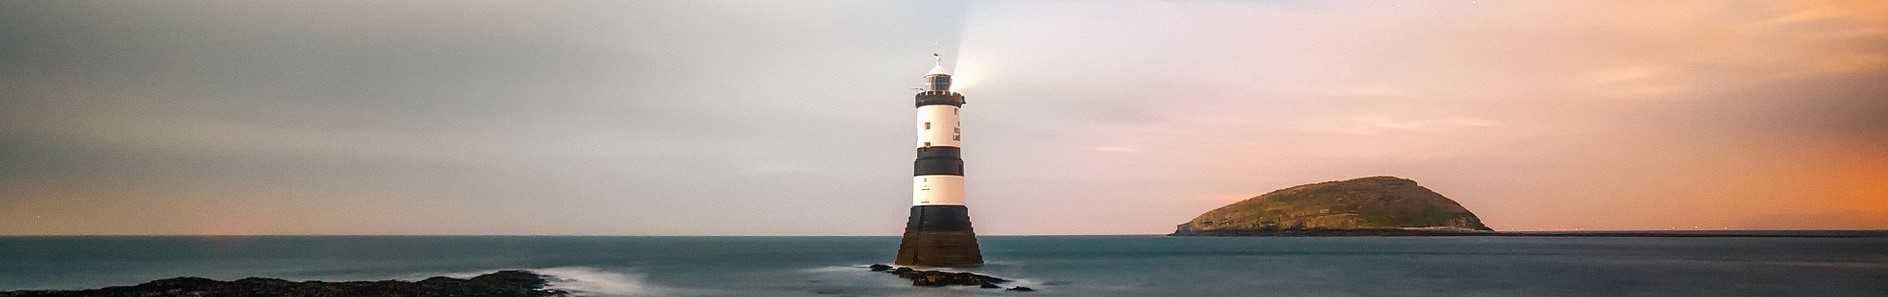 lighthouse-2225445_192022